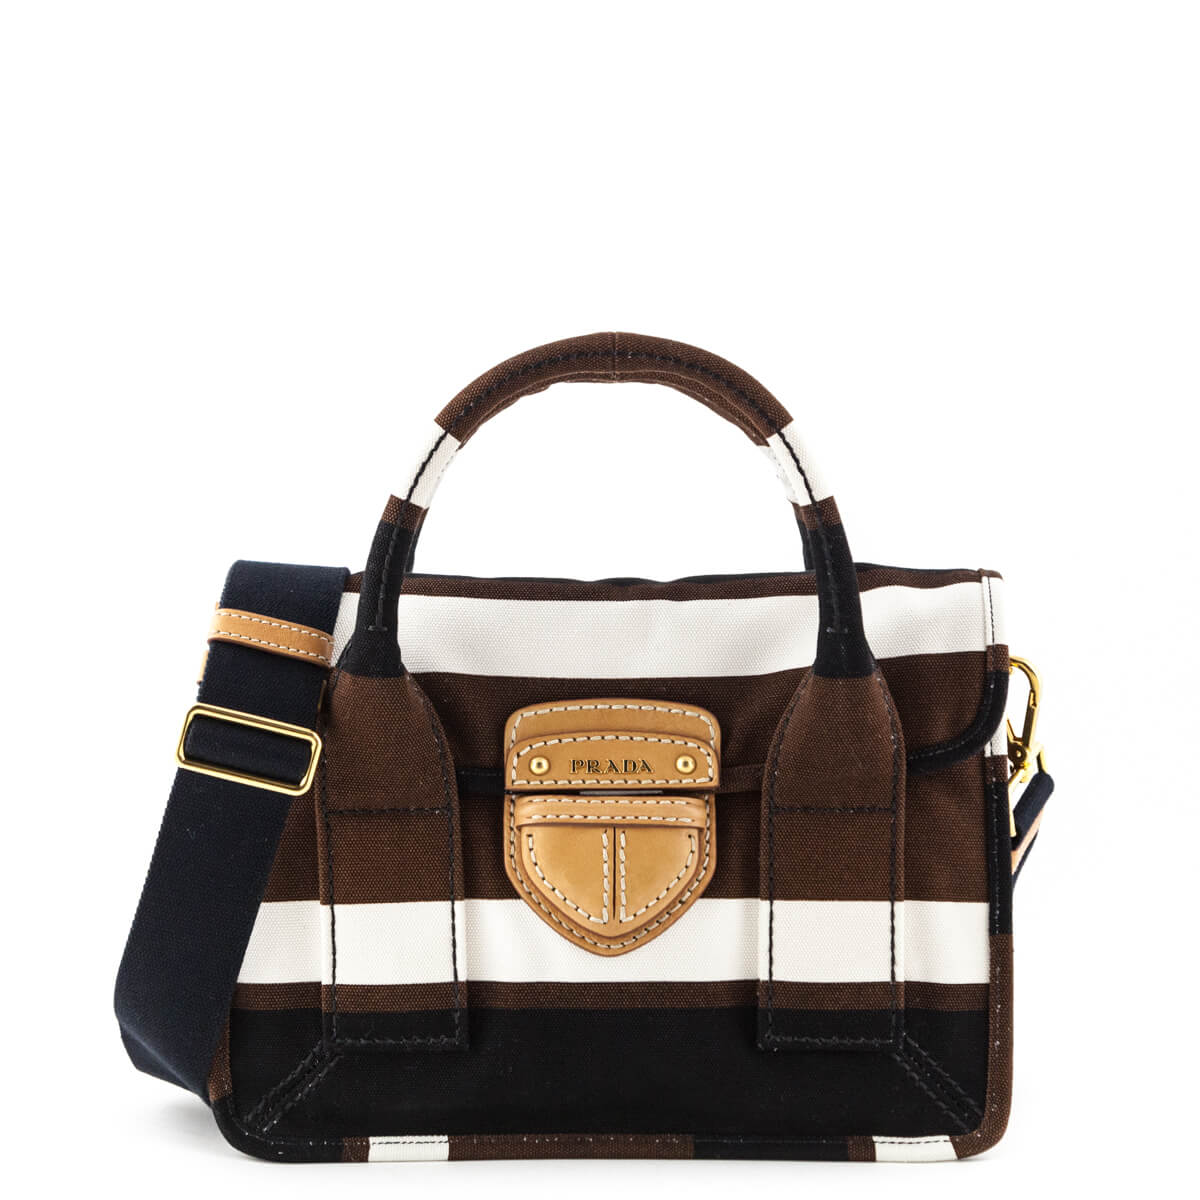 Prada White Brown   Black Canapa Righe Satchel bag - LOVE that BAG - Preowned  Authentic ... ec0f451a5ce5a